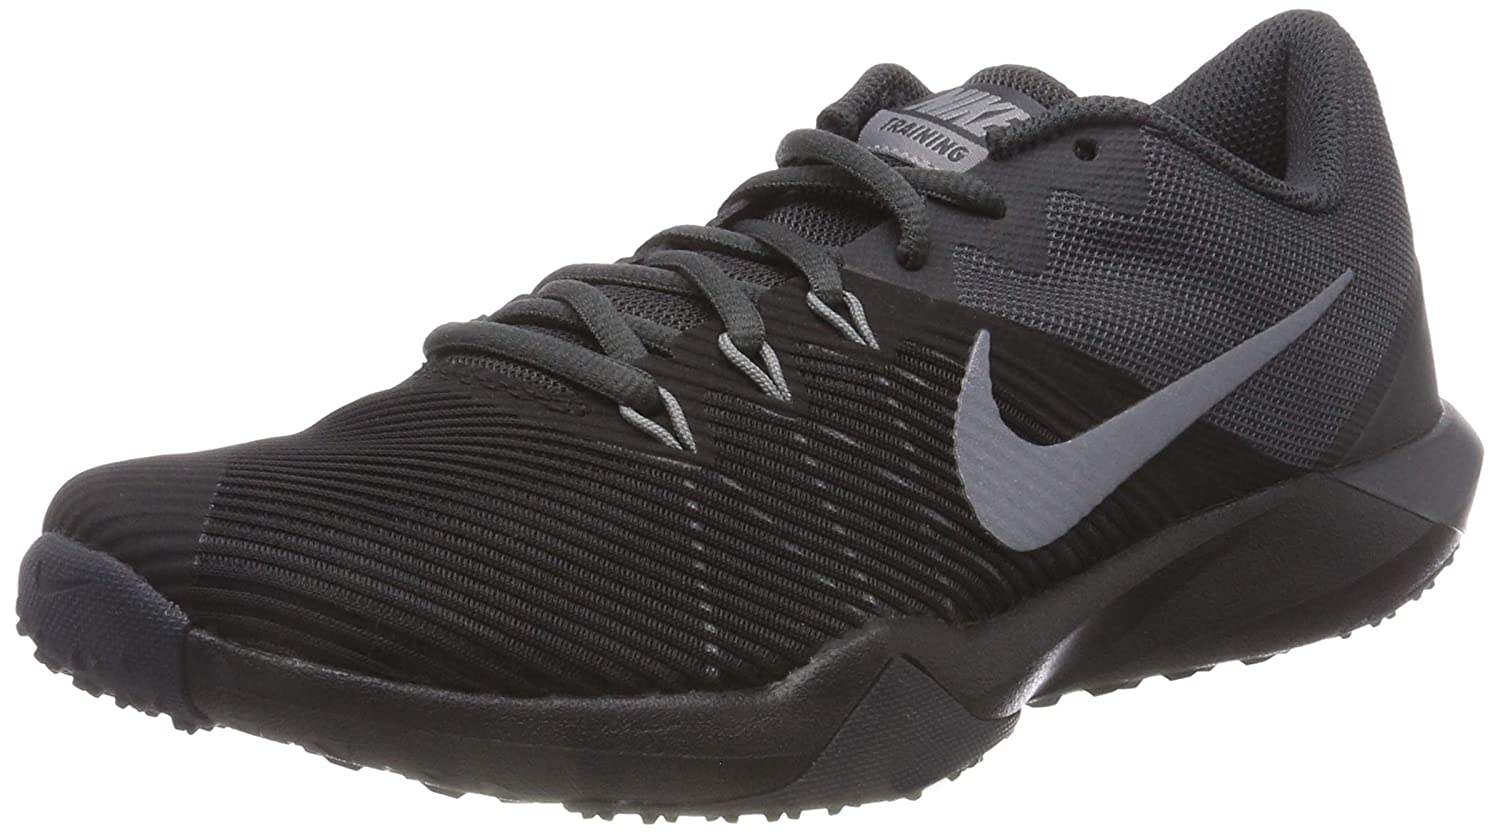 finest selection 5a8b2 35bf9 Amazon.com   Nike Men s Retaliation Trainer Cross   Fitness   Cross-Training